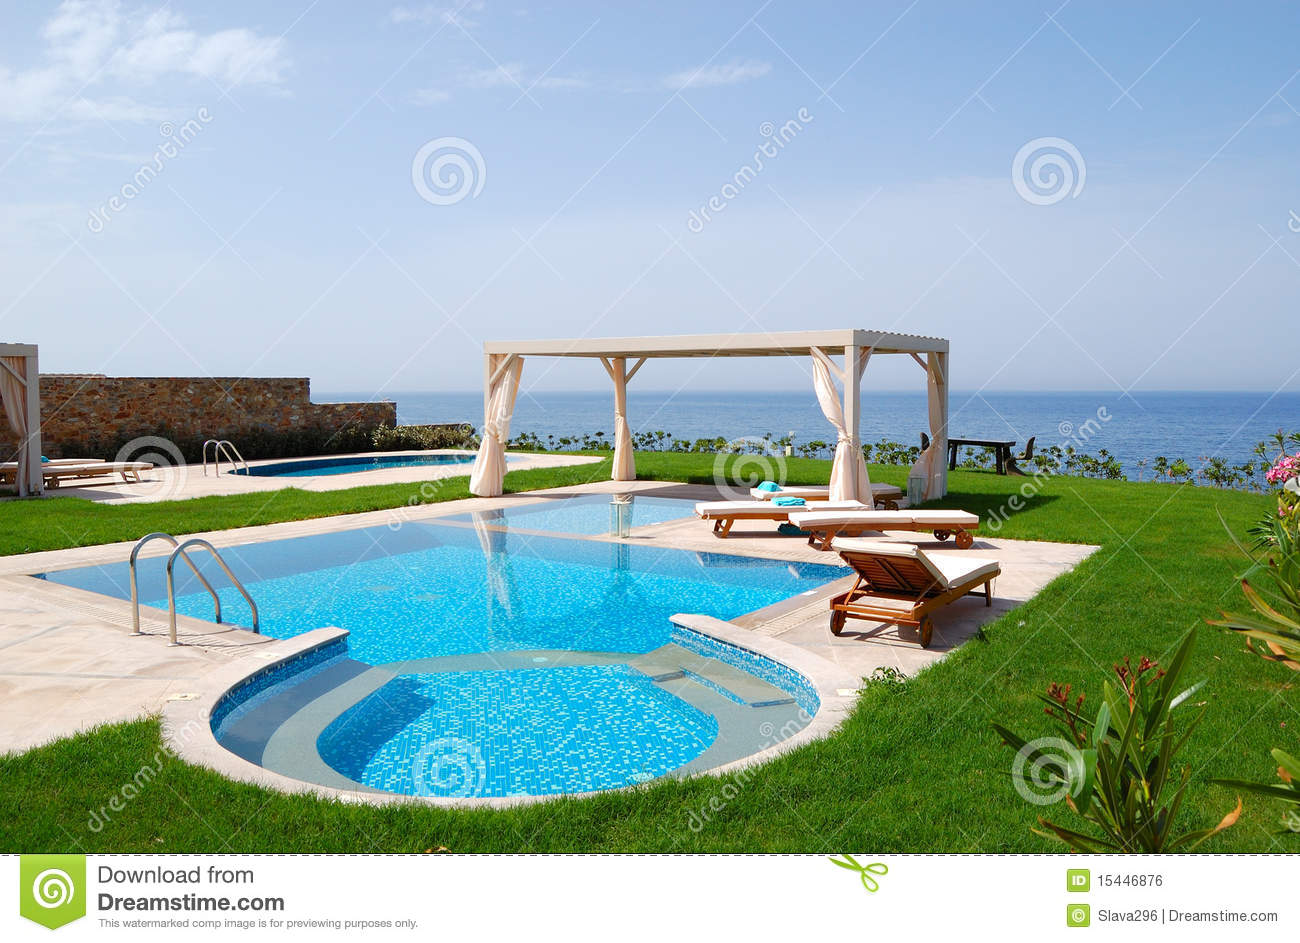 Pool And Jacuzzi Swimming Pool With Jacuzzi Royalty Free Stock Image